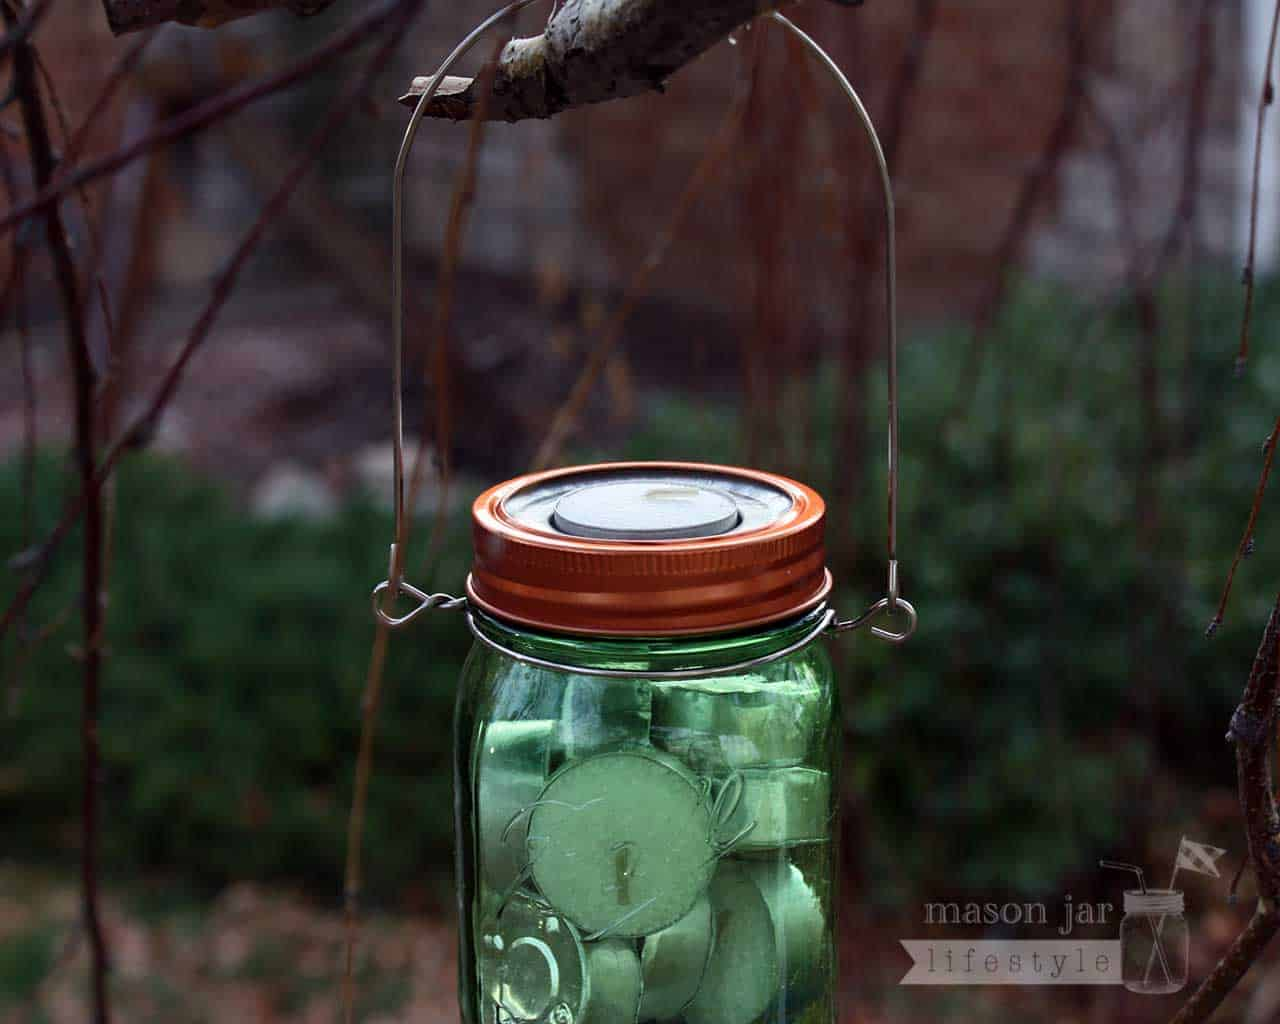 metal tea light candle holder insert with copper band and stainless steel wire handle on tree